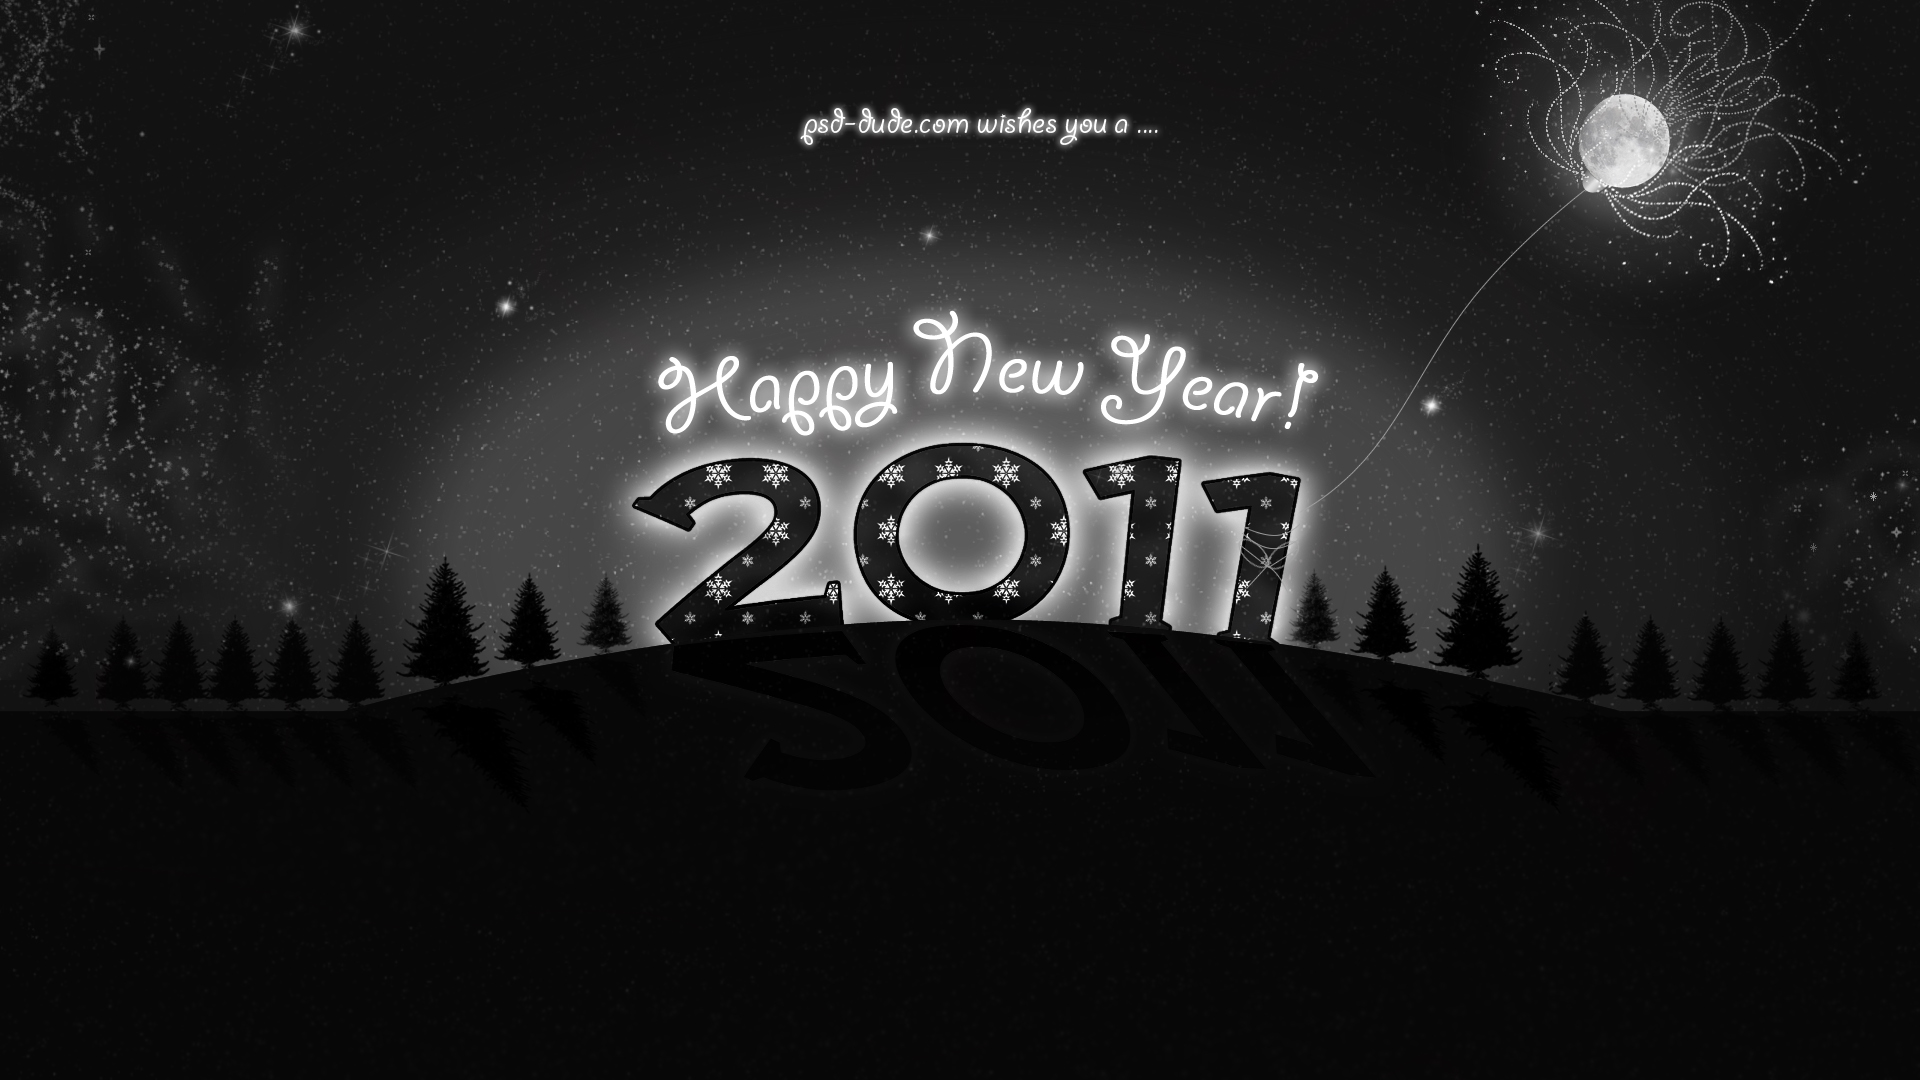 download happy new year 2011 wallpaper size 1920x1080